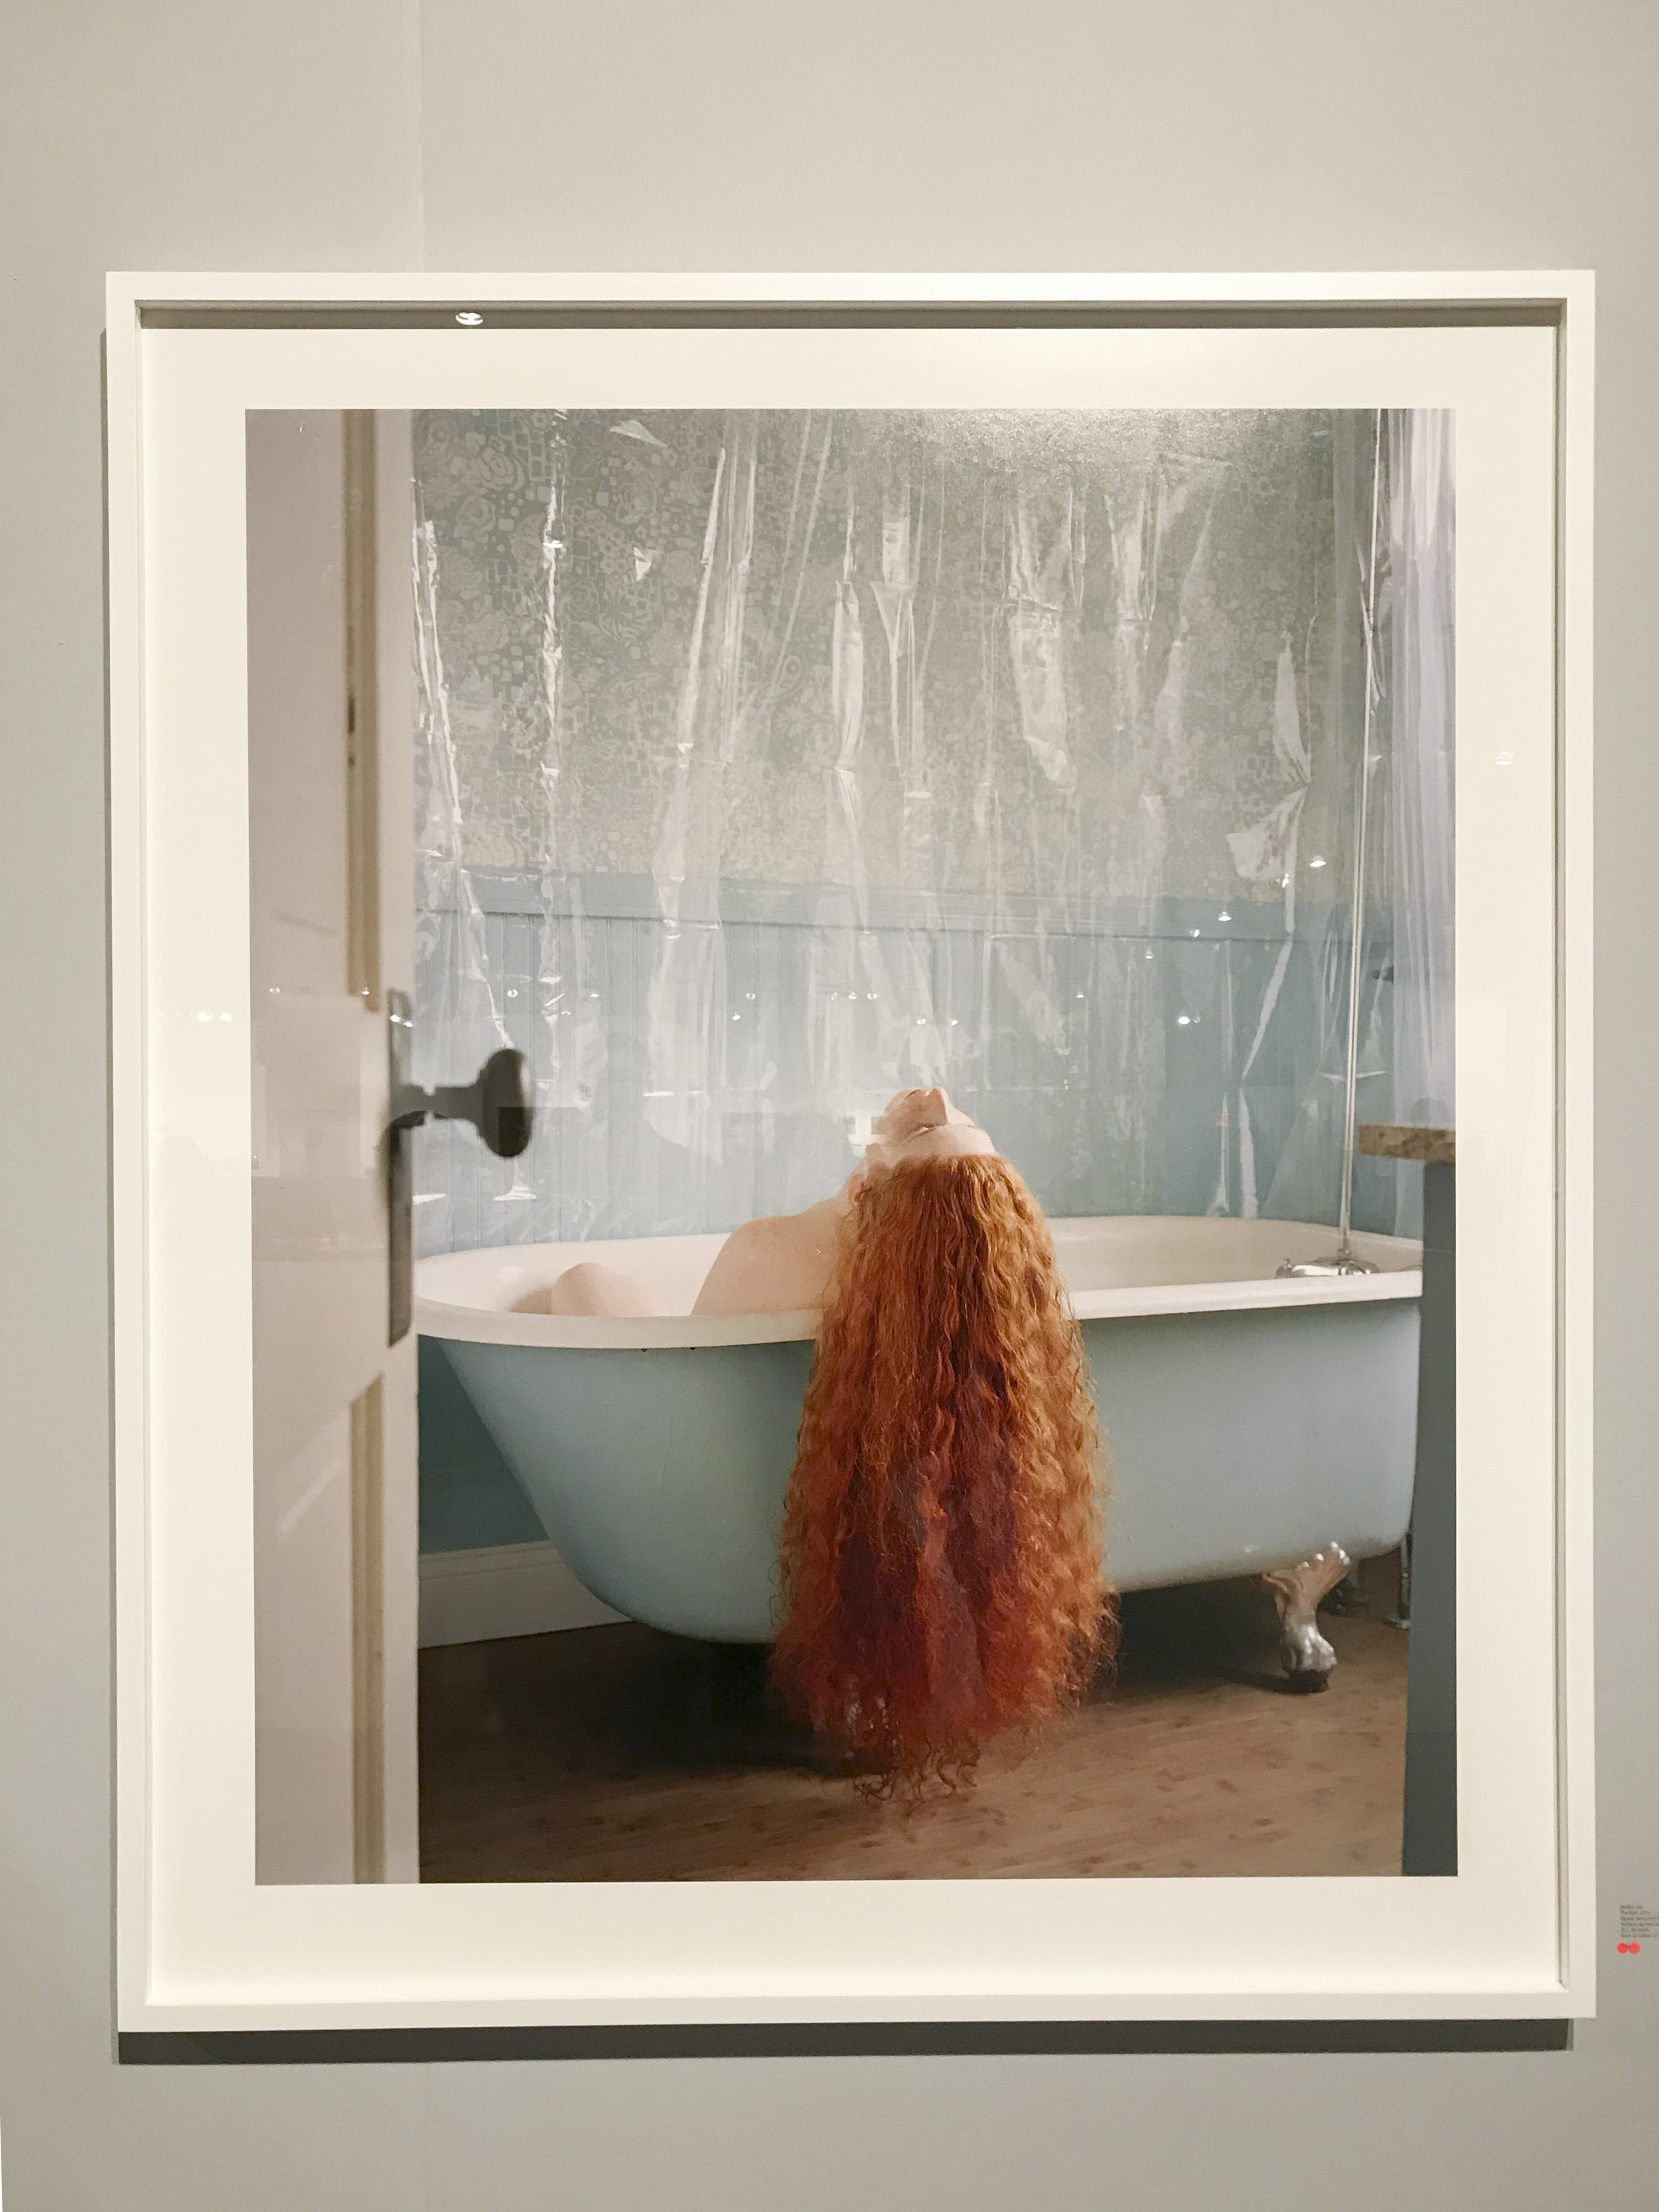 Jocelyn Lee,  The Bath , 2016, archival pigment print, 40 x 30 inches. On view at Huxley-Parlour Gallery (Booth 417).